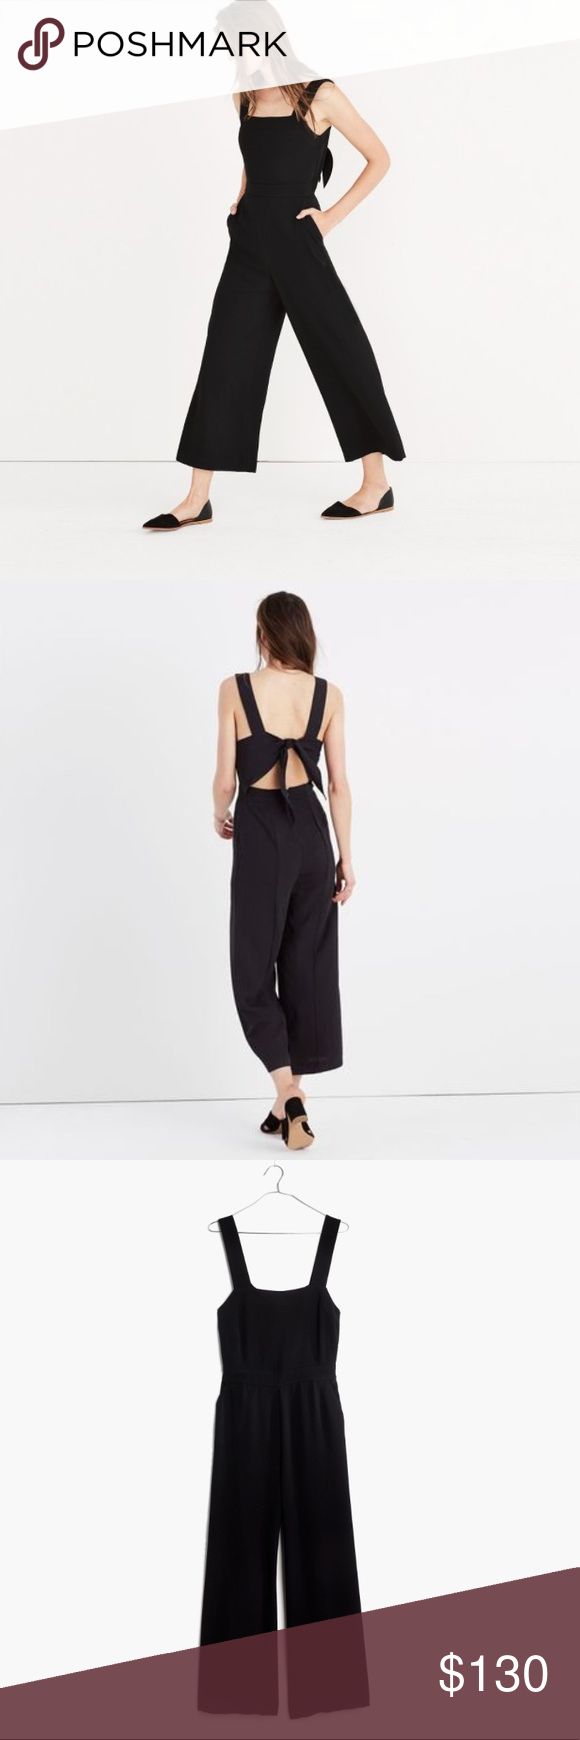 Madewell Apron Bow Back Jumpsuit Size 0 Nwt Madewell Apron Bow Back